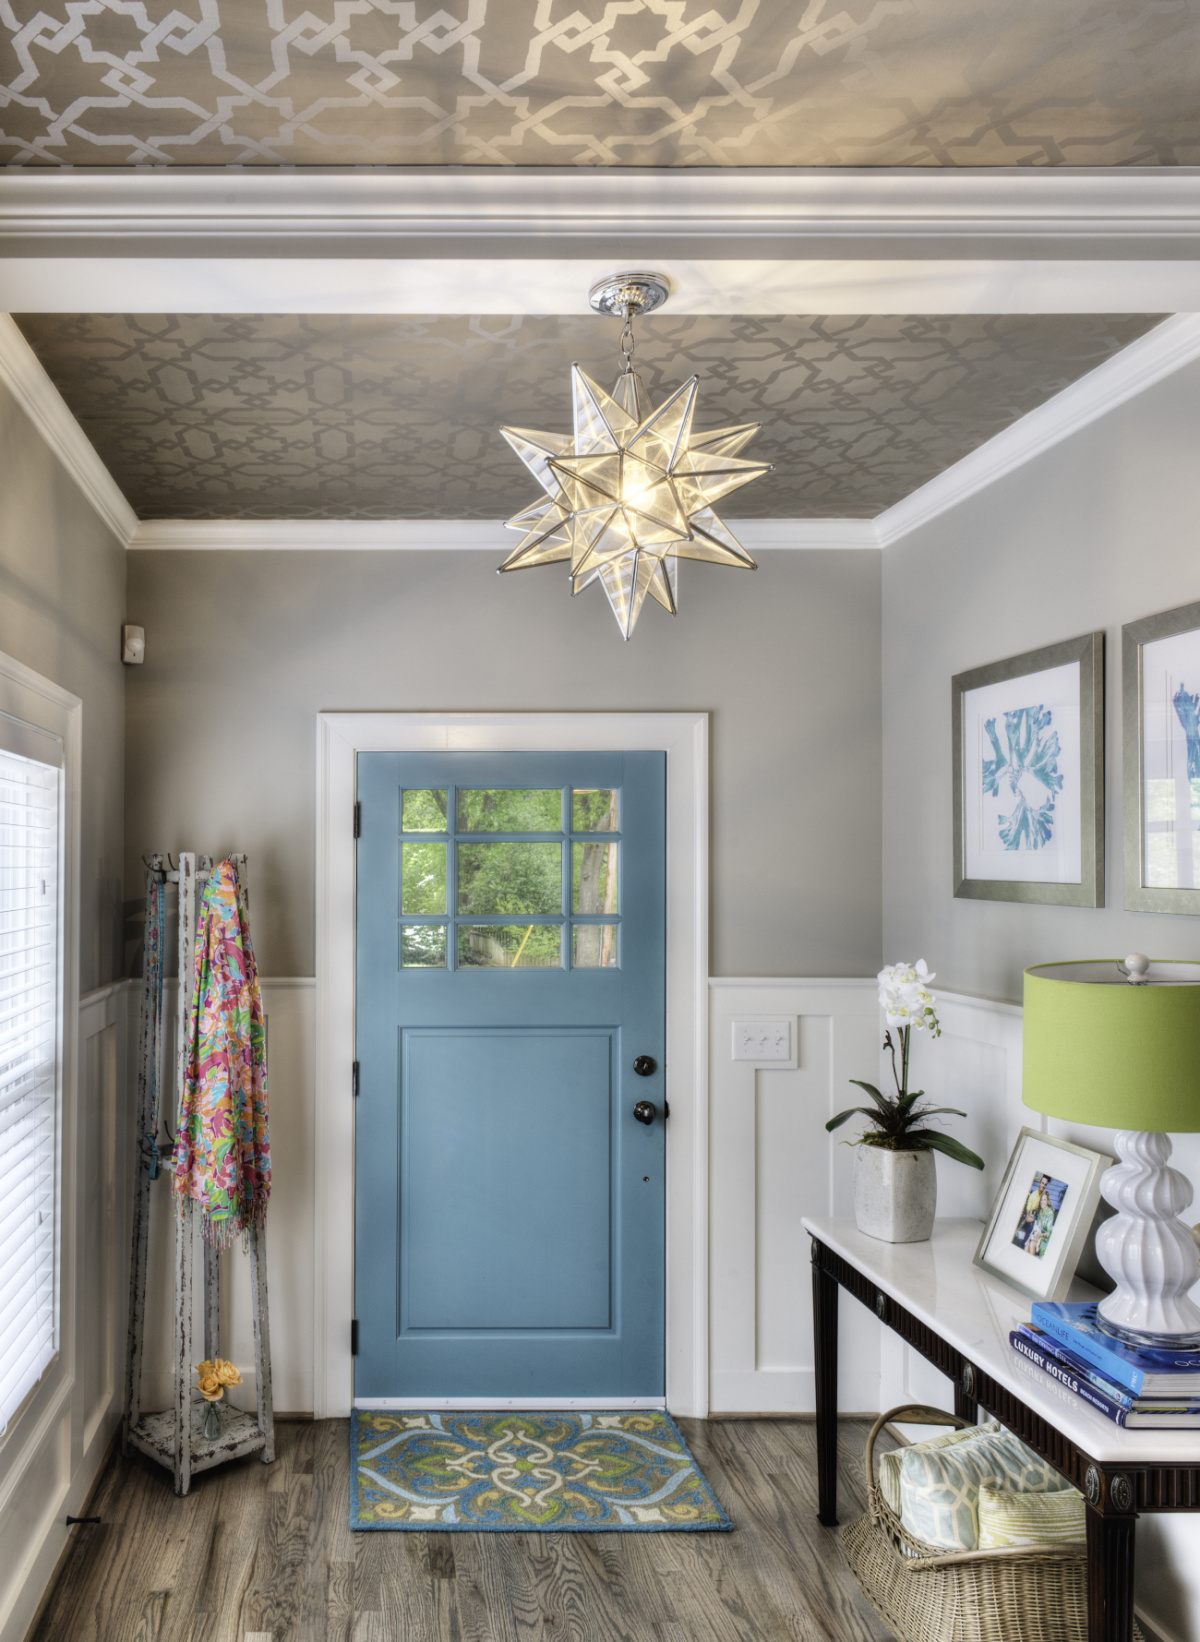 Entry way with patterned ceiling